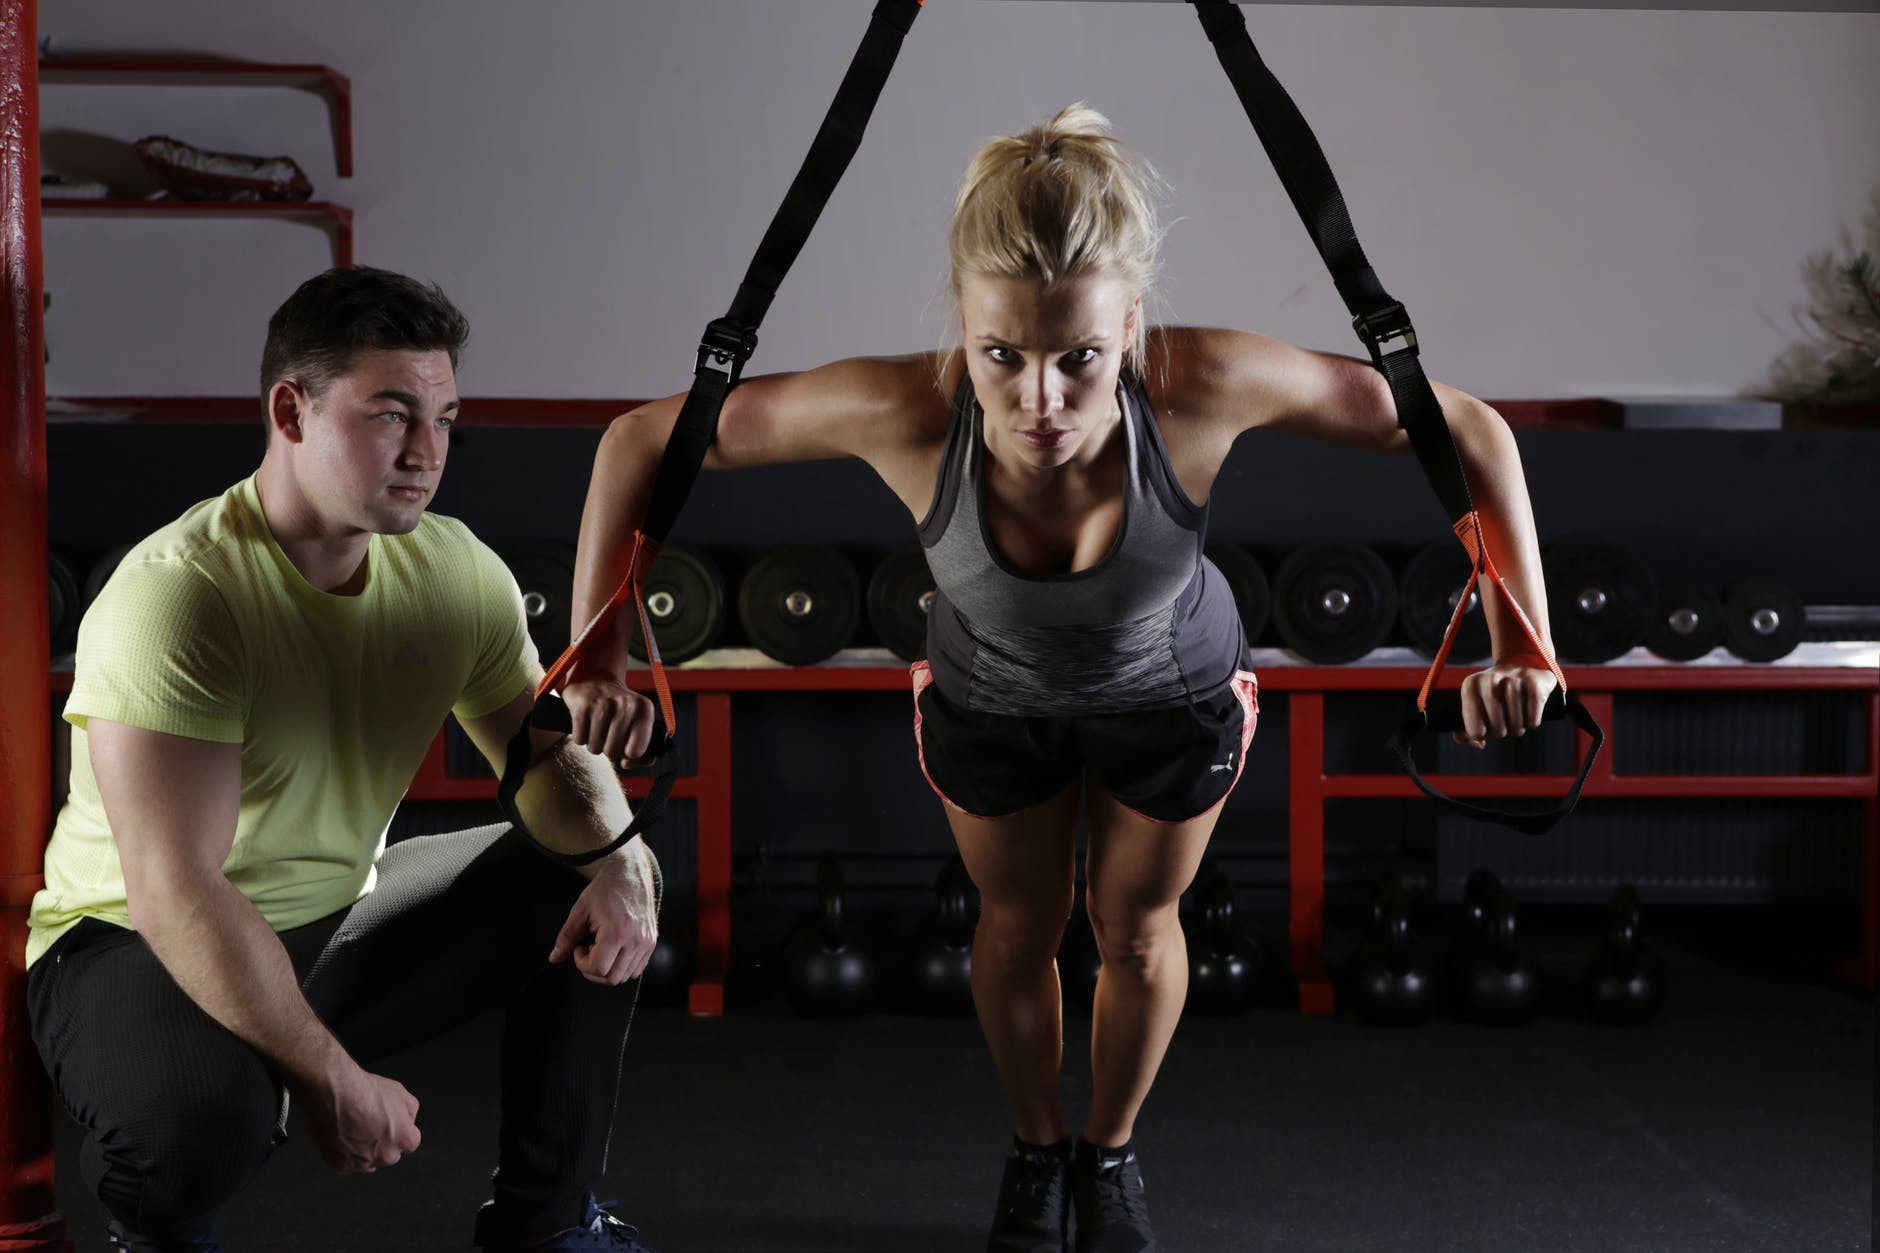 Do You Need Cardio For Fat Loss?